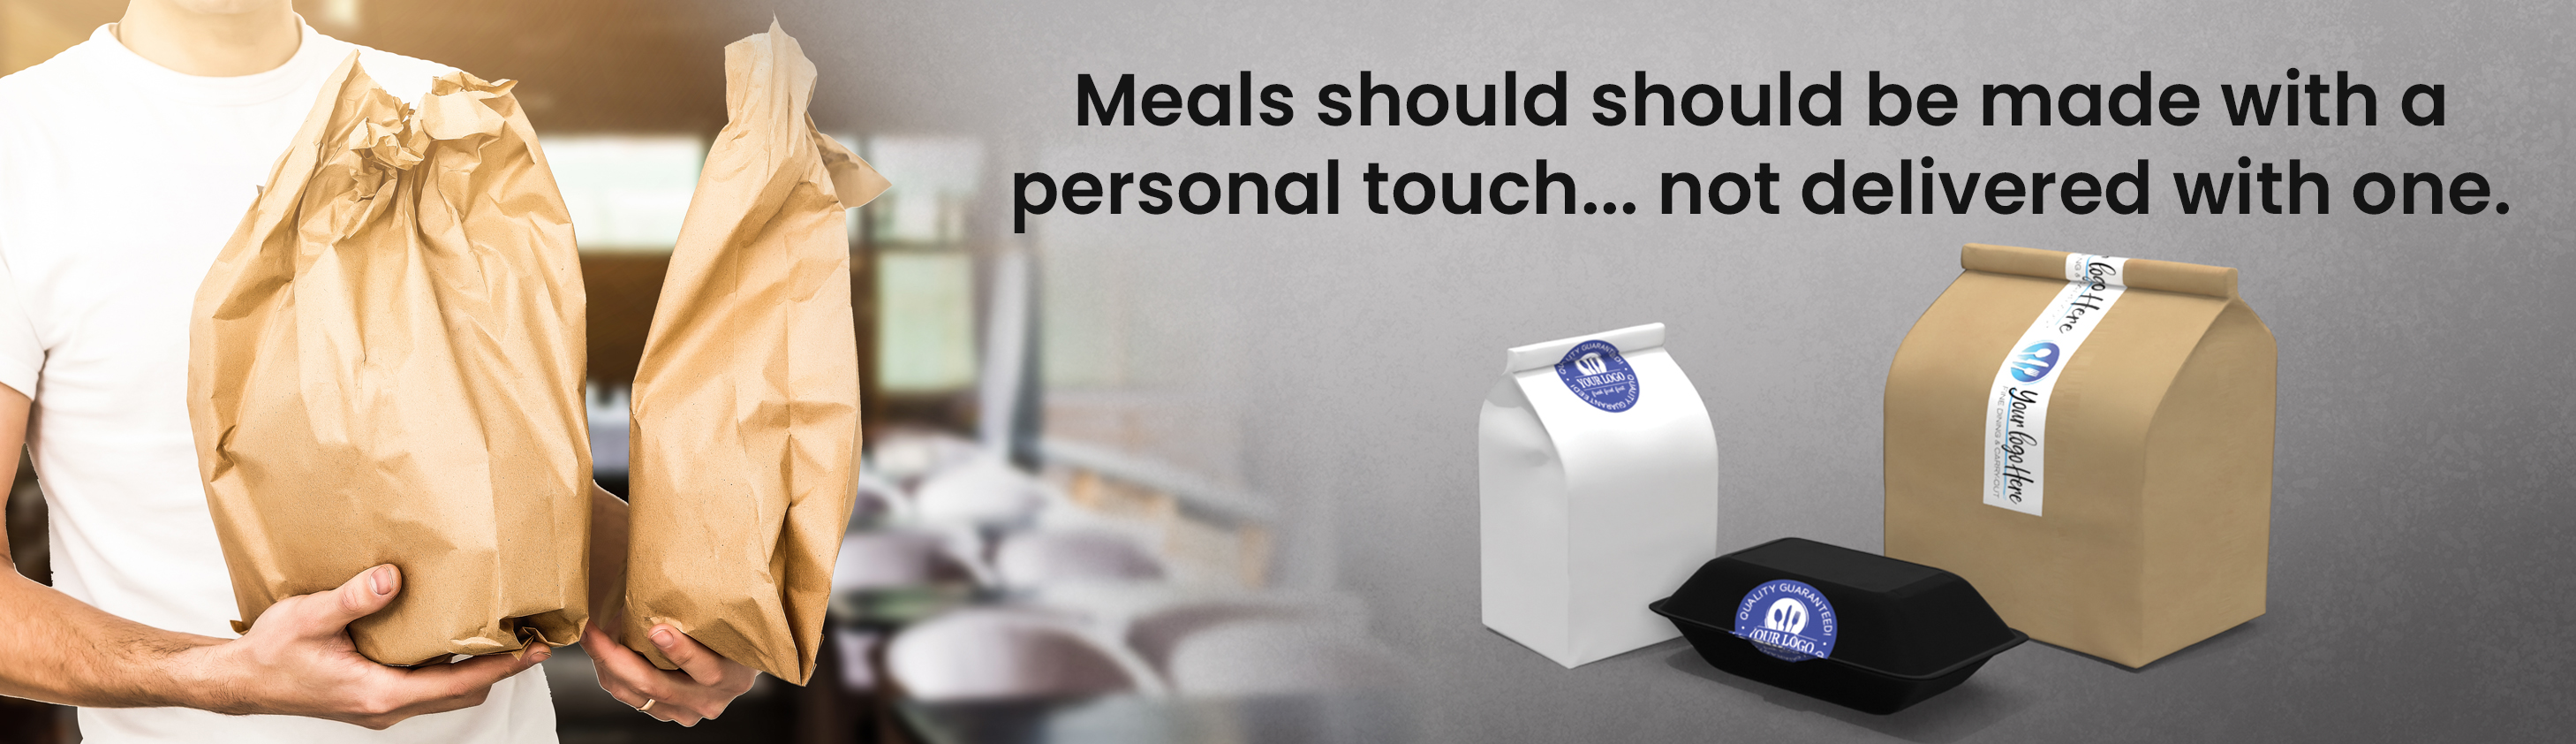 "Takeout containers with text ""Meals should be made with a personal touch... not delivered with one"""